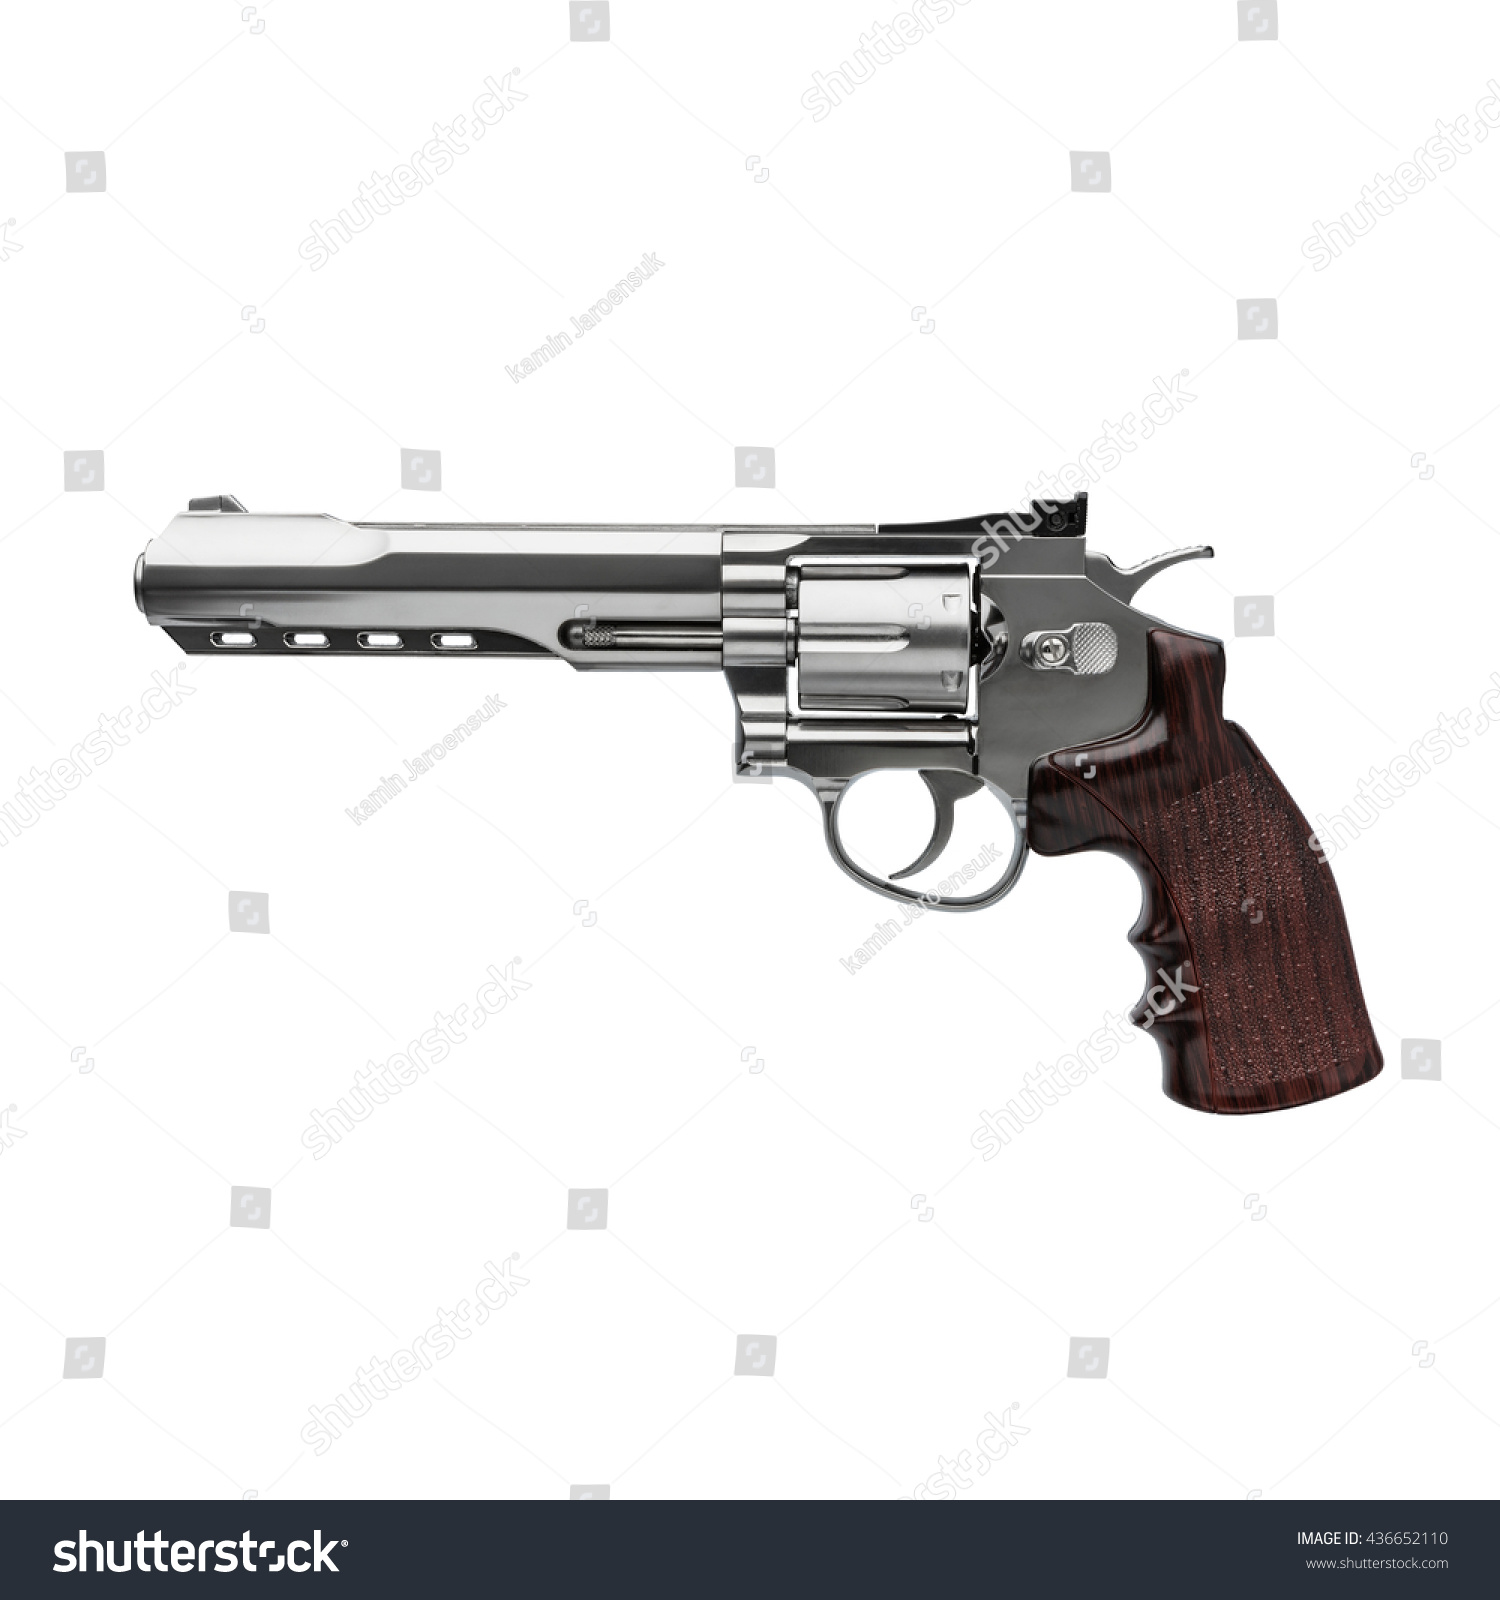 gun white background - photo #41